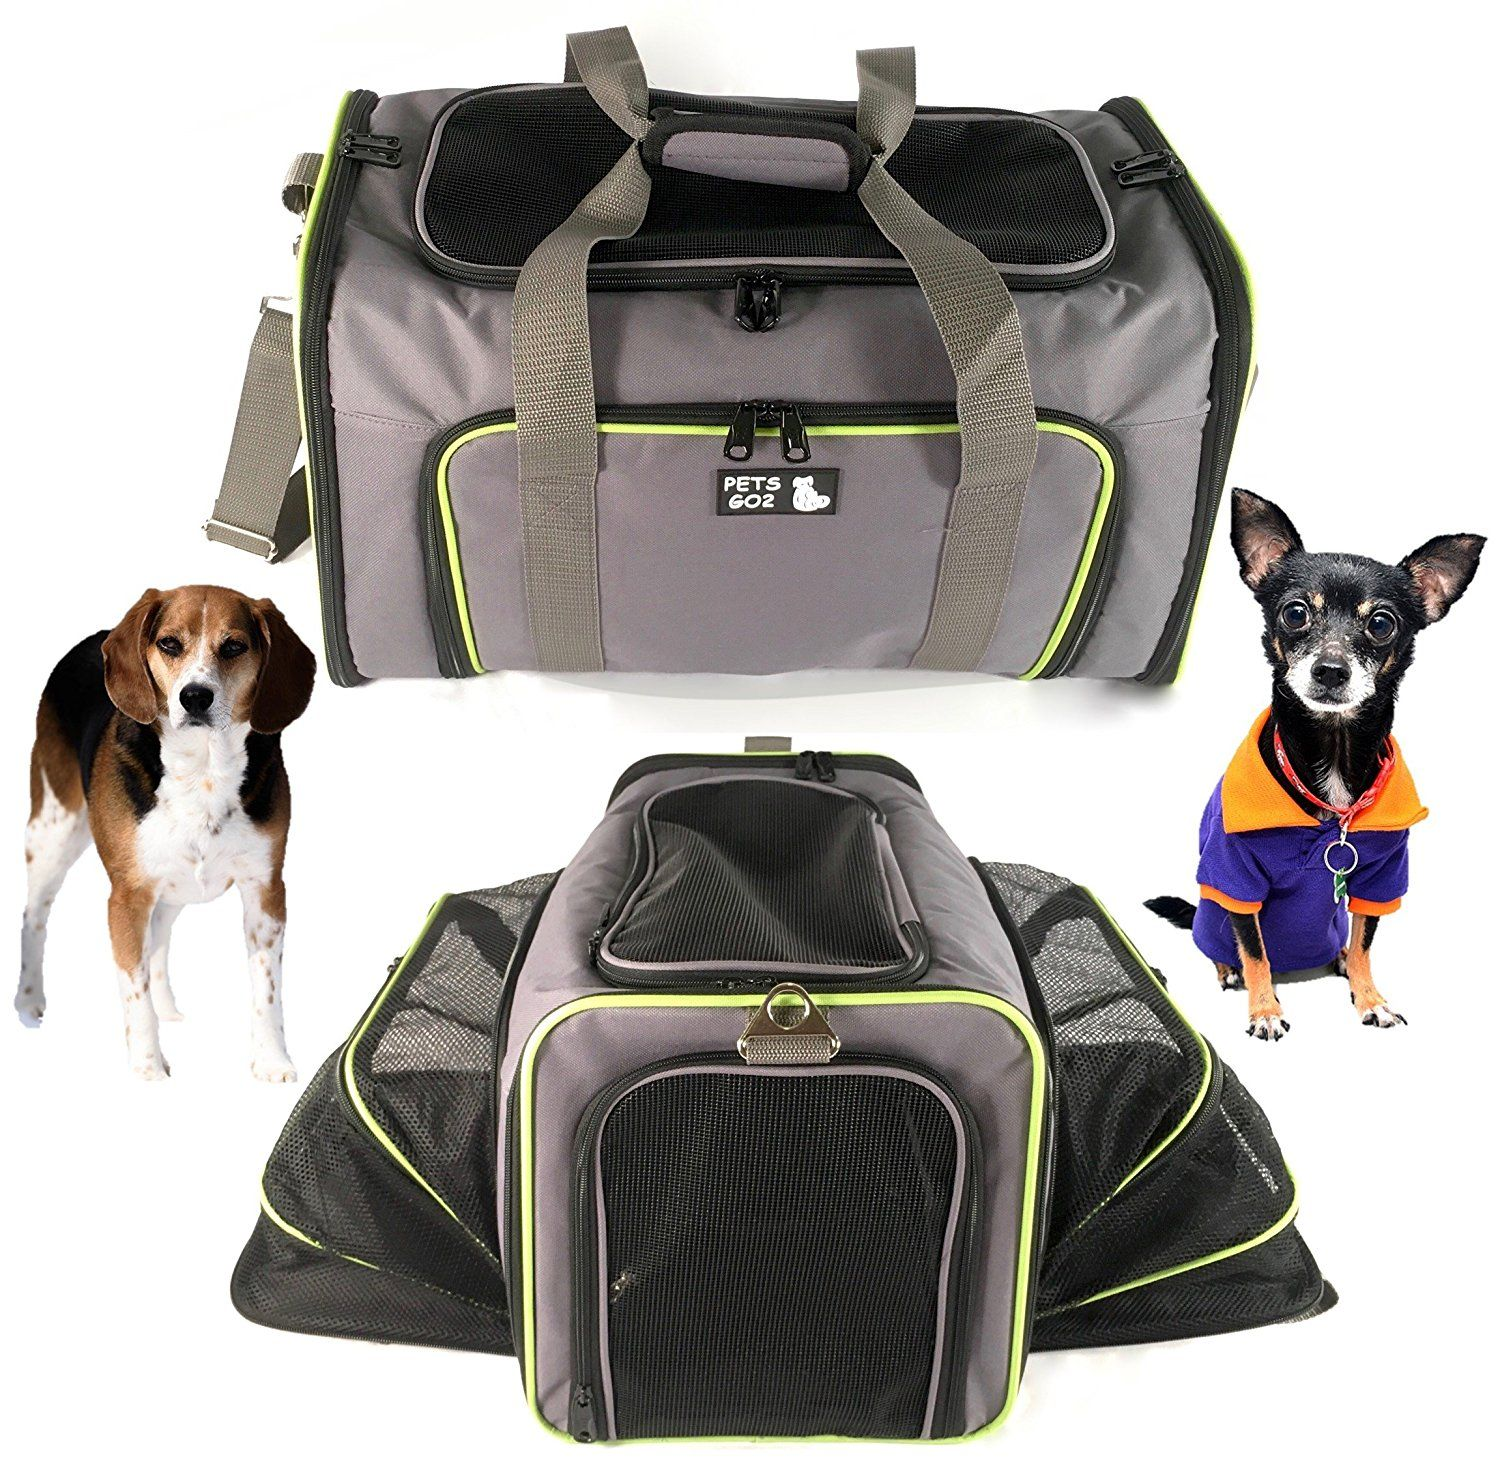 Best cat carrier for long distance travel